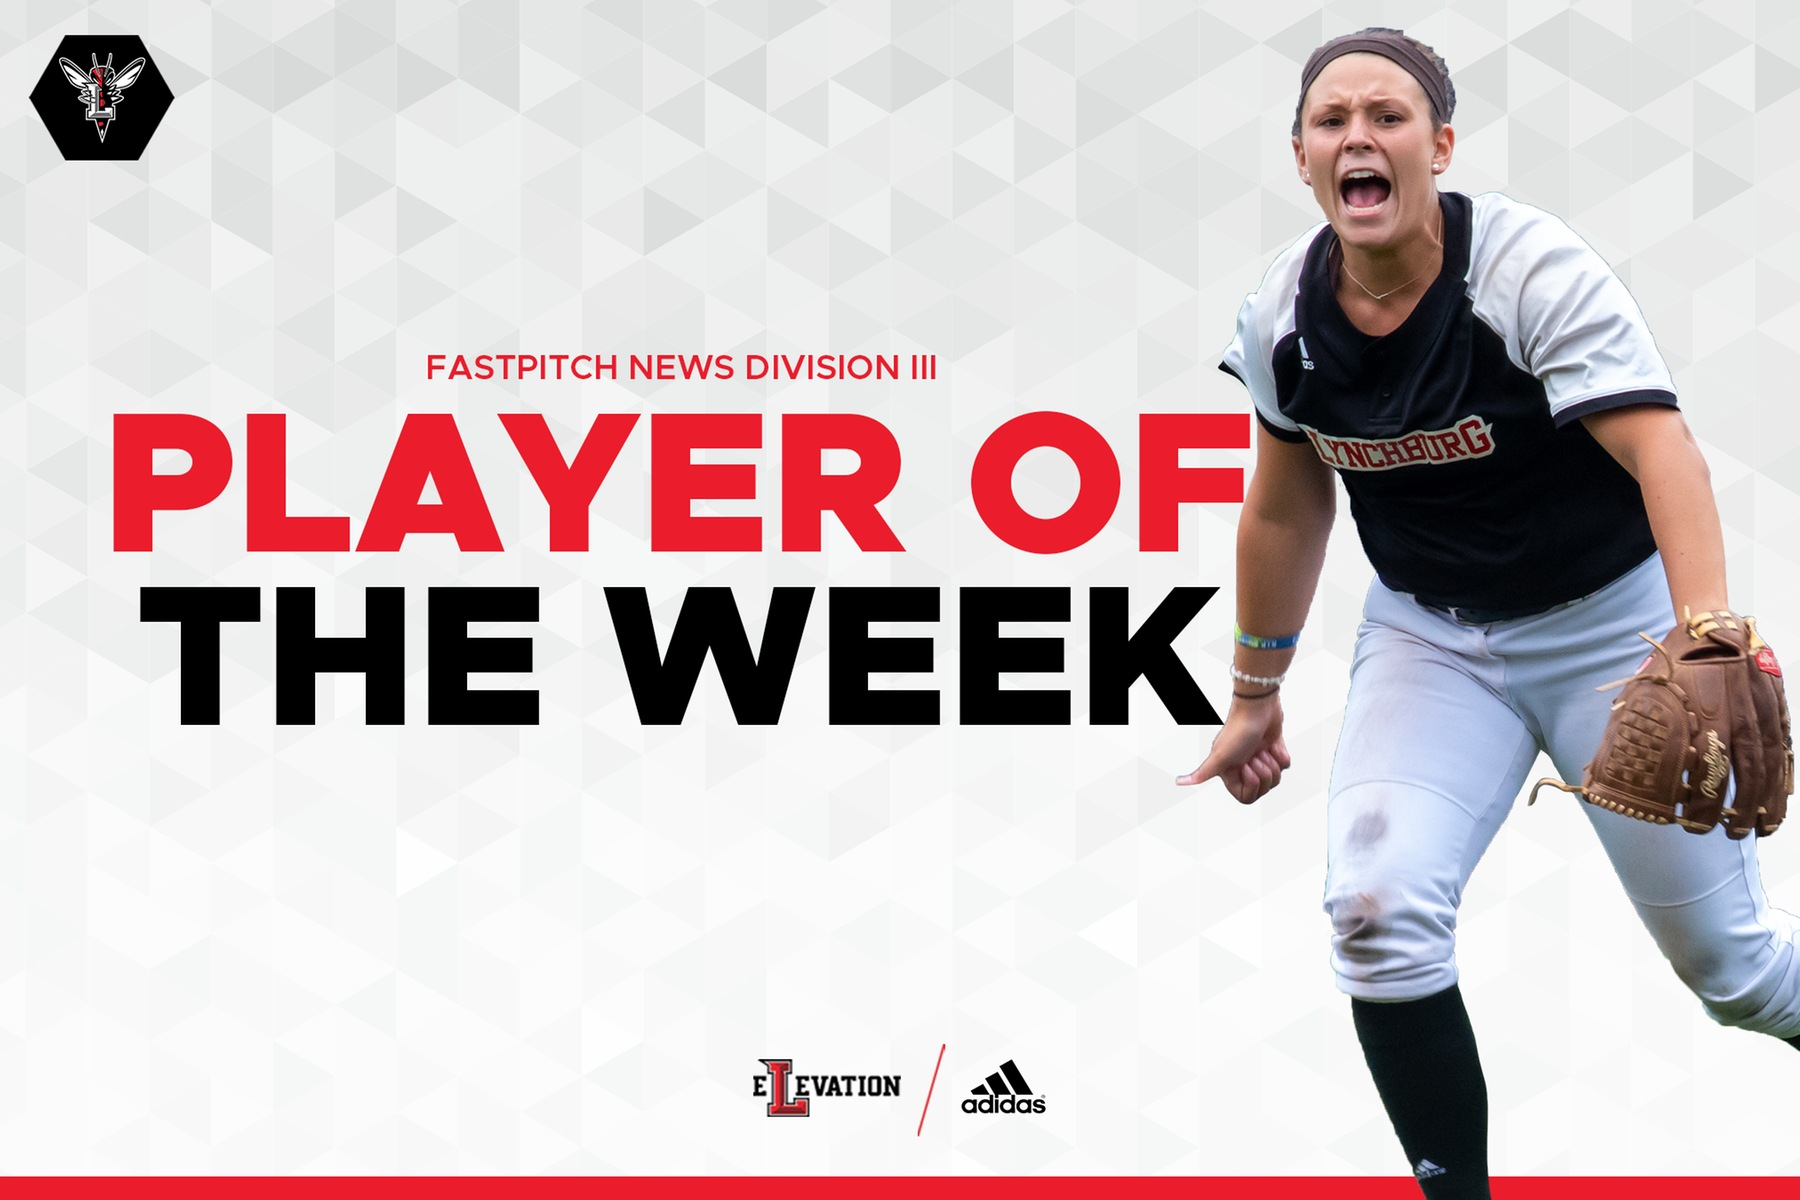 Kortney Leazer national player of the week graphic with her in black jersey